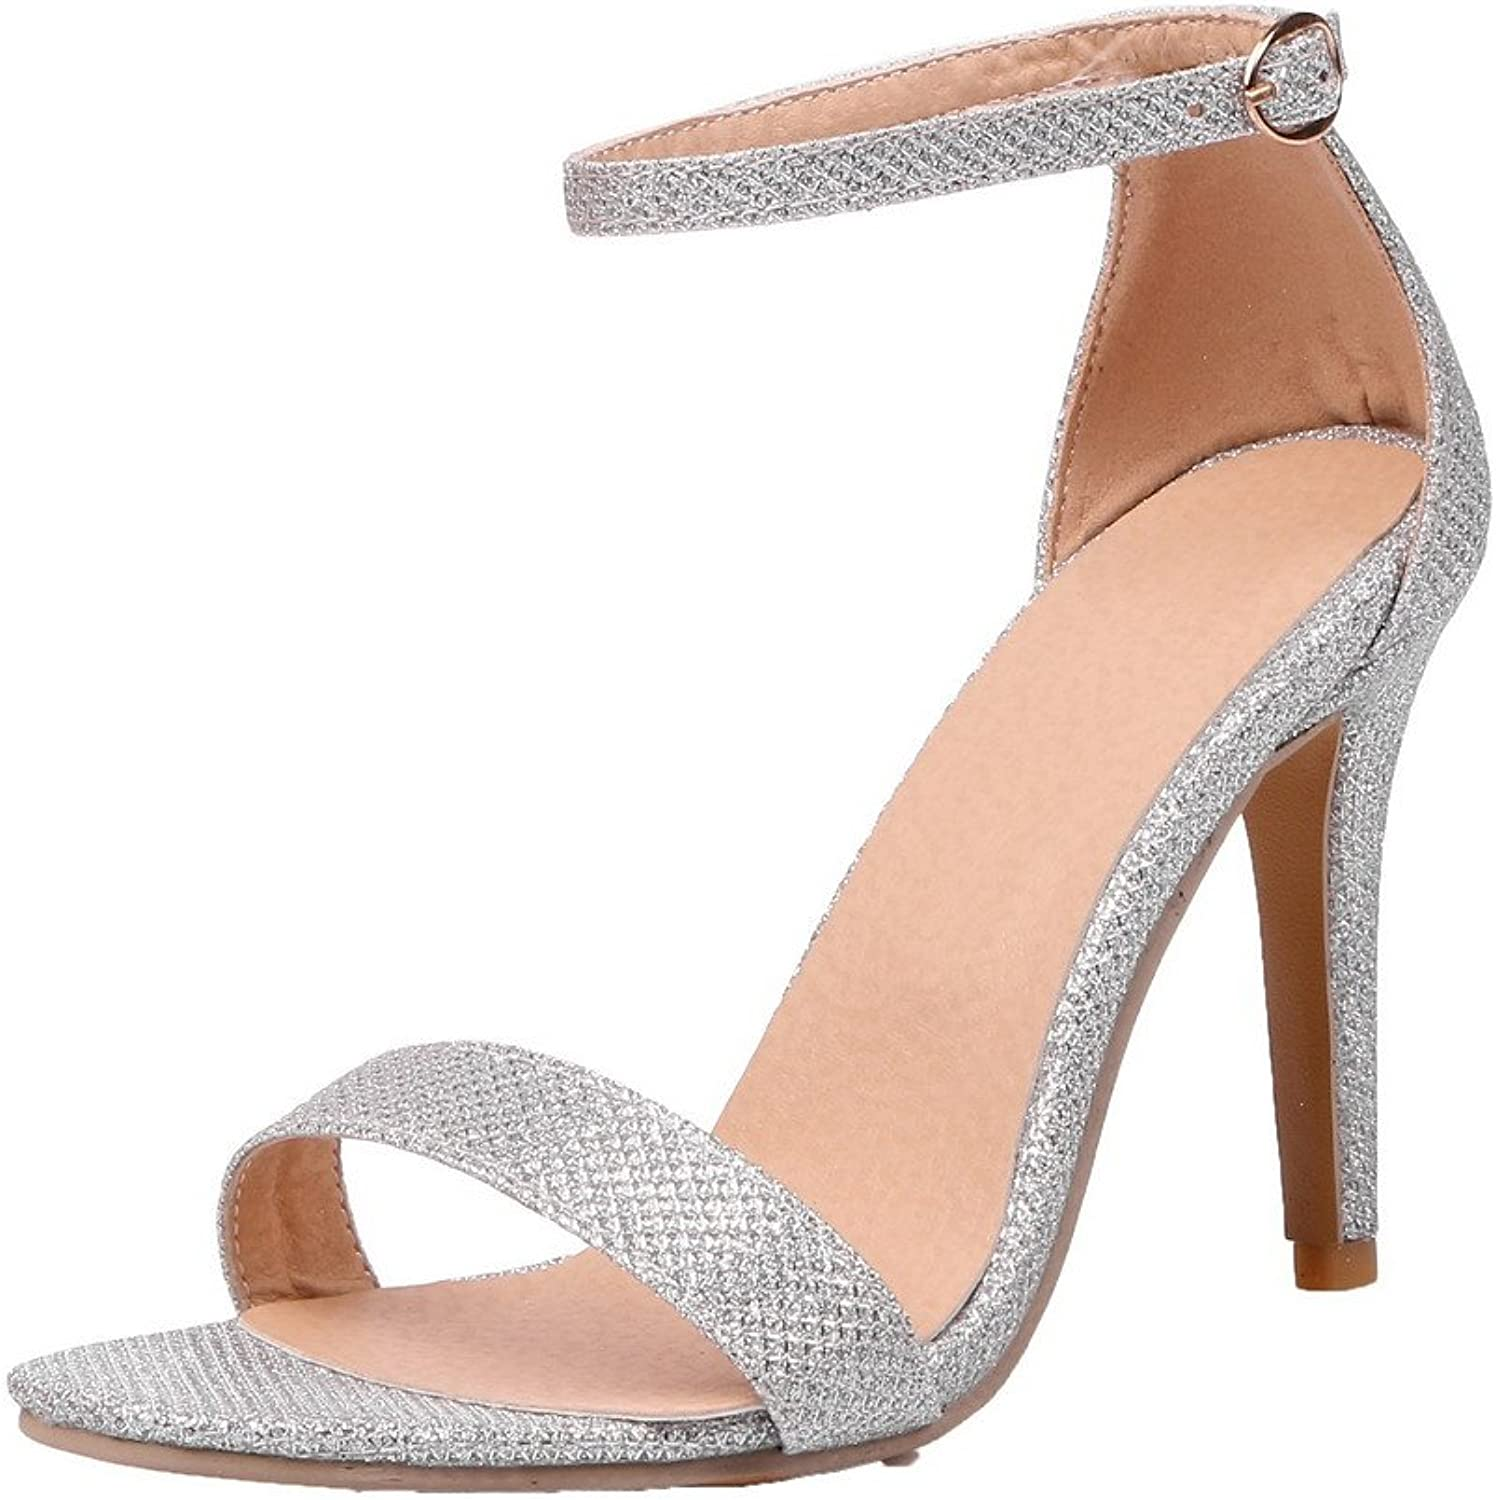 AllhqFashion Women's Solid Blend Materials High-Heels Open-Toe Buckle Sandals